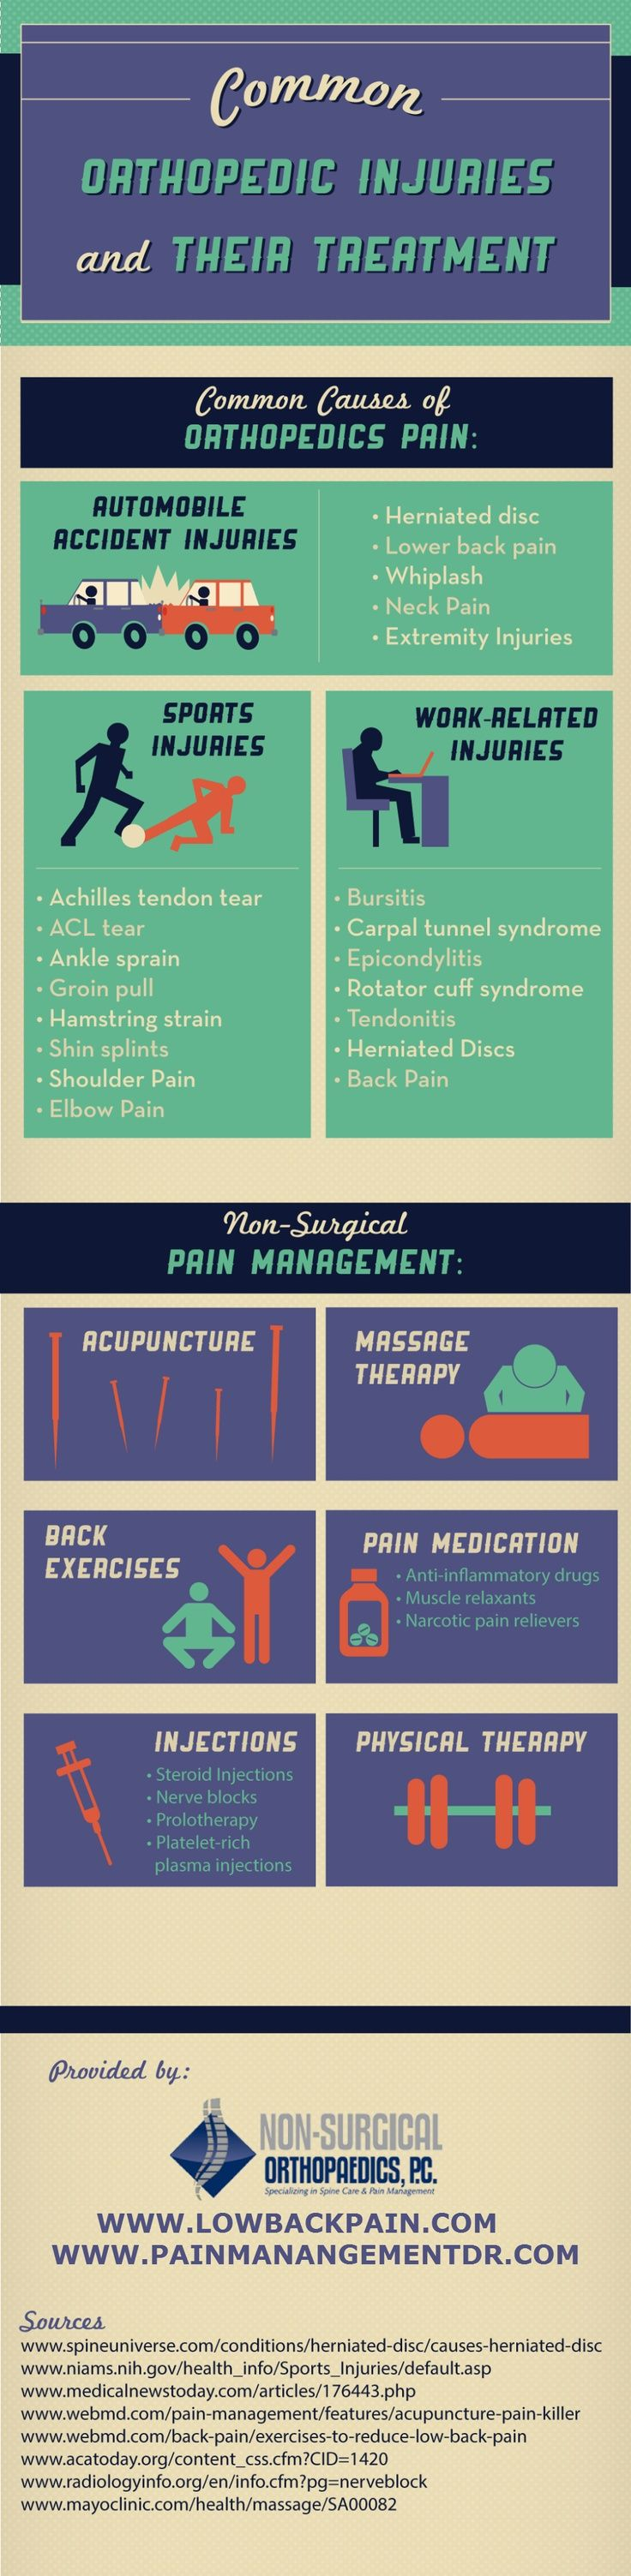 Are you suffering from ankle sprains or chronic shin splints? The pain can be developed from many sources like sports injuries, auto accidents, and various workplace activities. So, it will be difficult to deal with the pain and stiffness with proper pain management techniques. Consulting an orthopedic surgeon will give you right treatment for the most pressuring injuries, ACL tears, carpal tunnel syndrome and herniated disc.